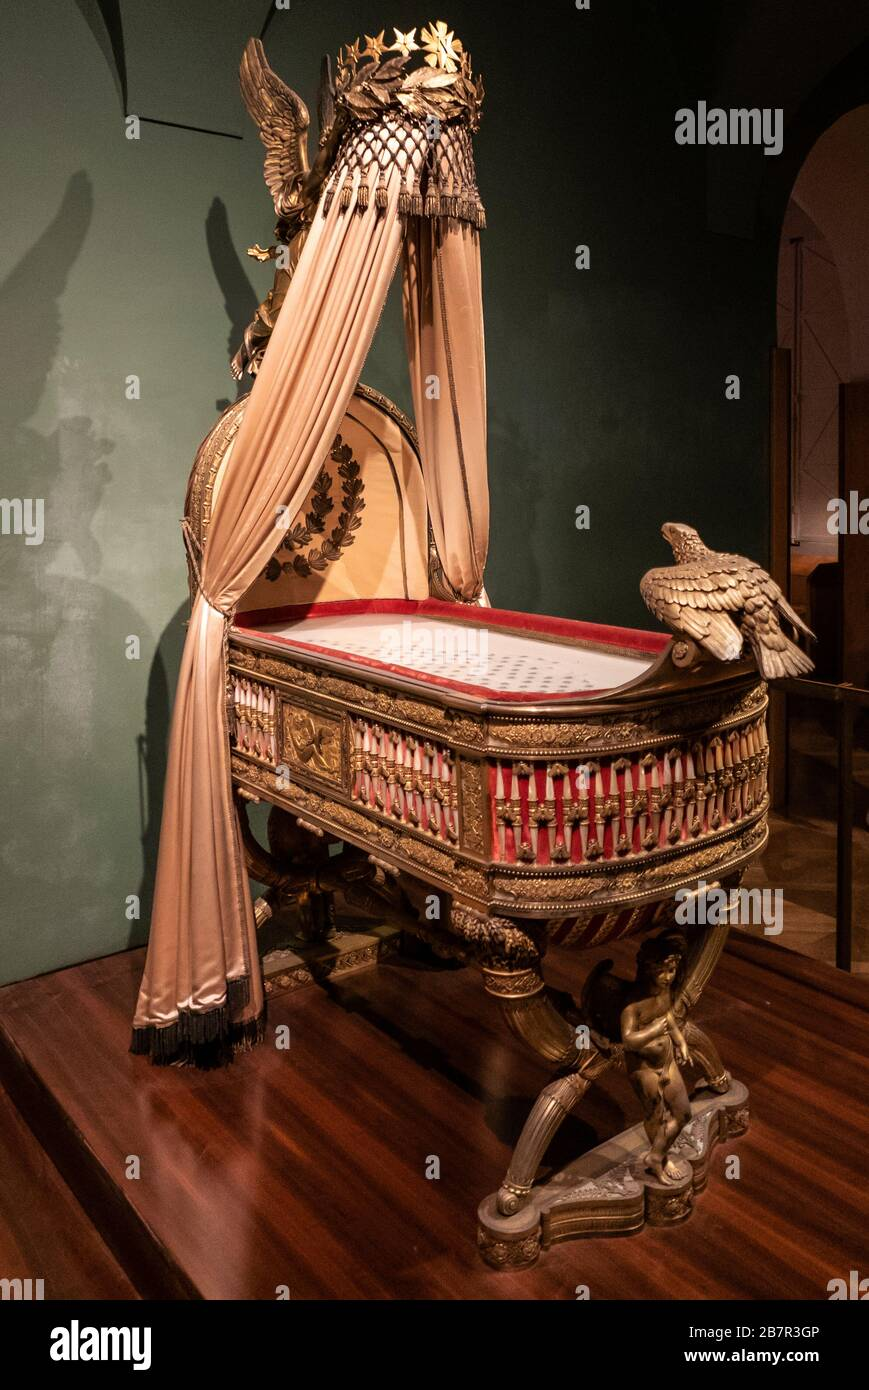 The cradle of the King of Rome (1811 - 1832), heir to Emperor Napoleon Bonaparte and Empress Marie Louise, now in the Hofburg,Vienna. Stock Photo